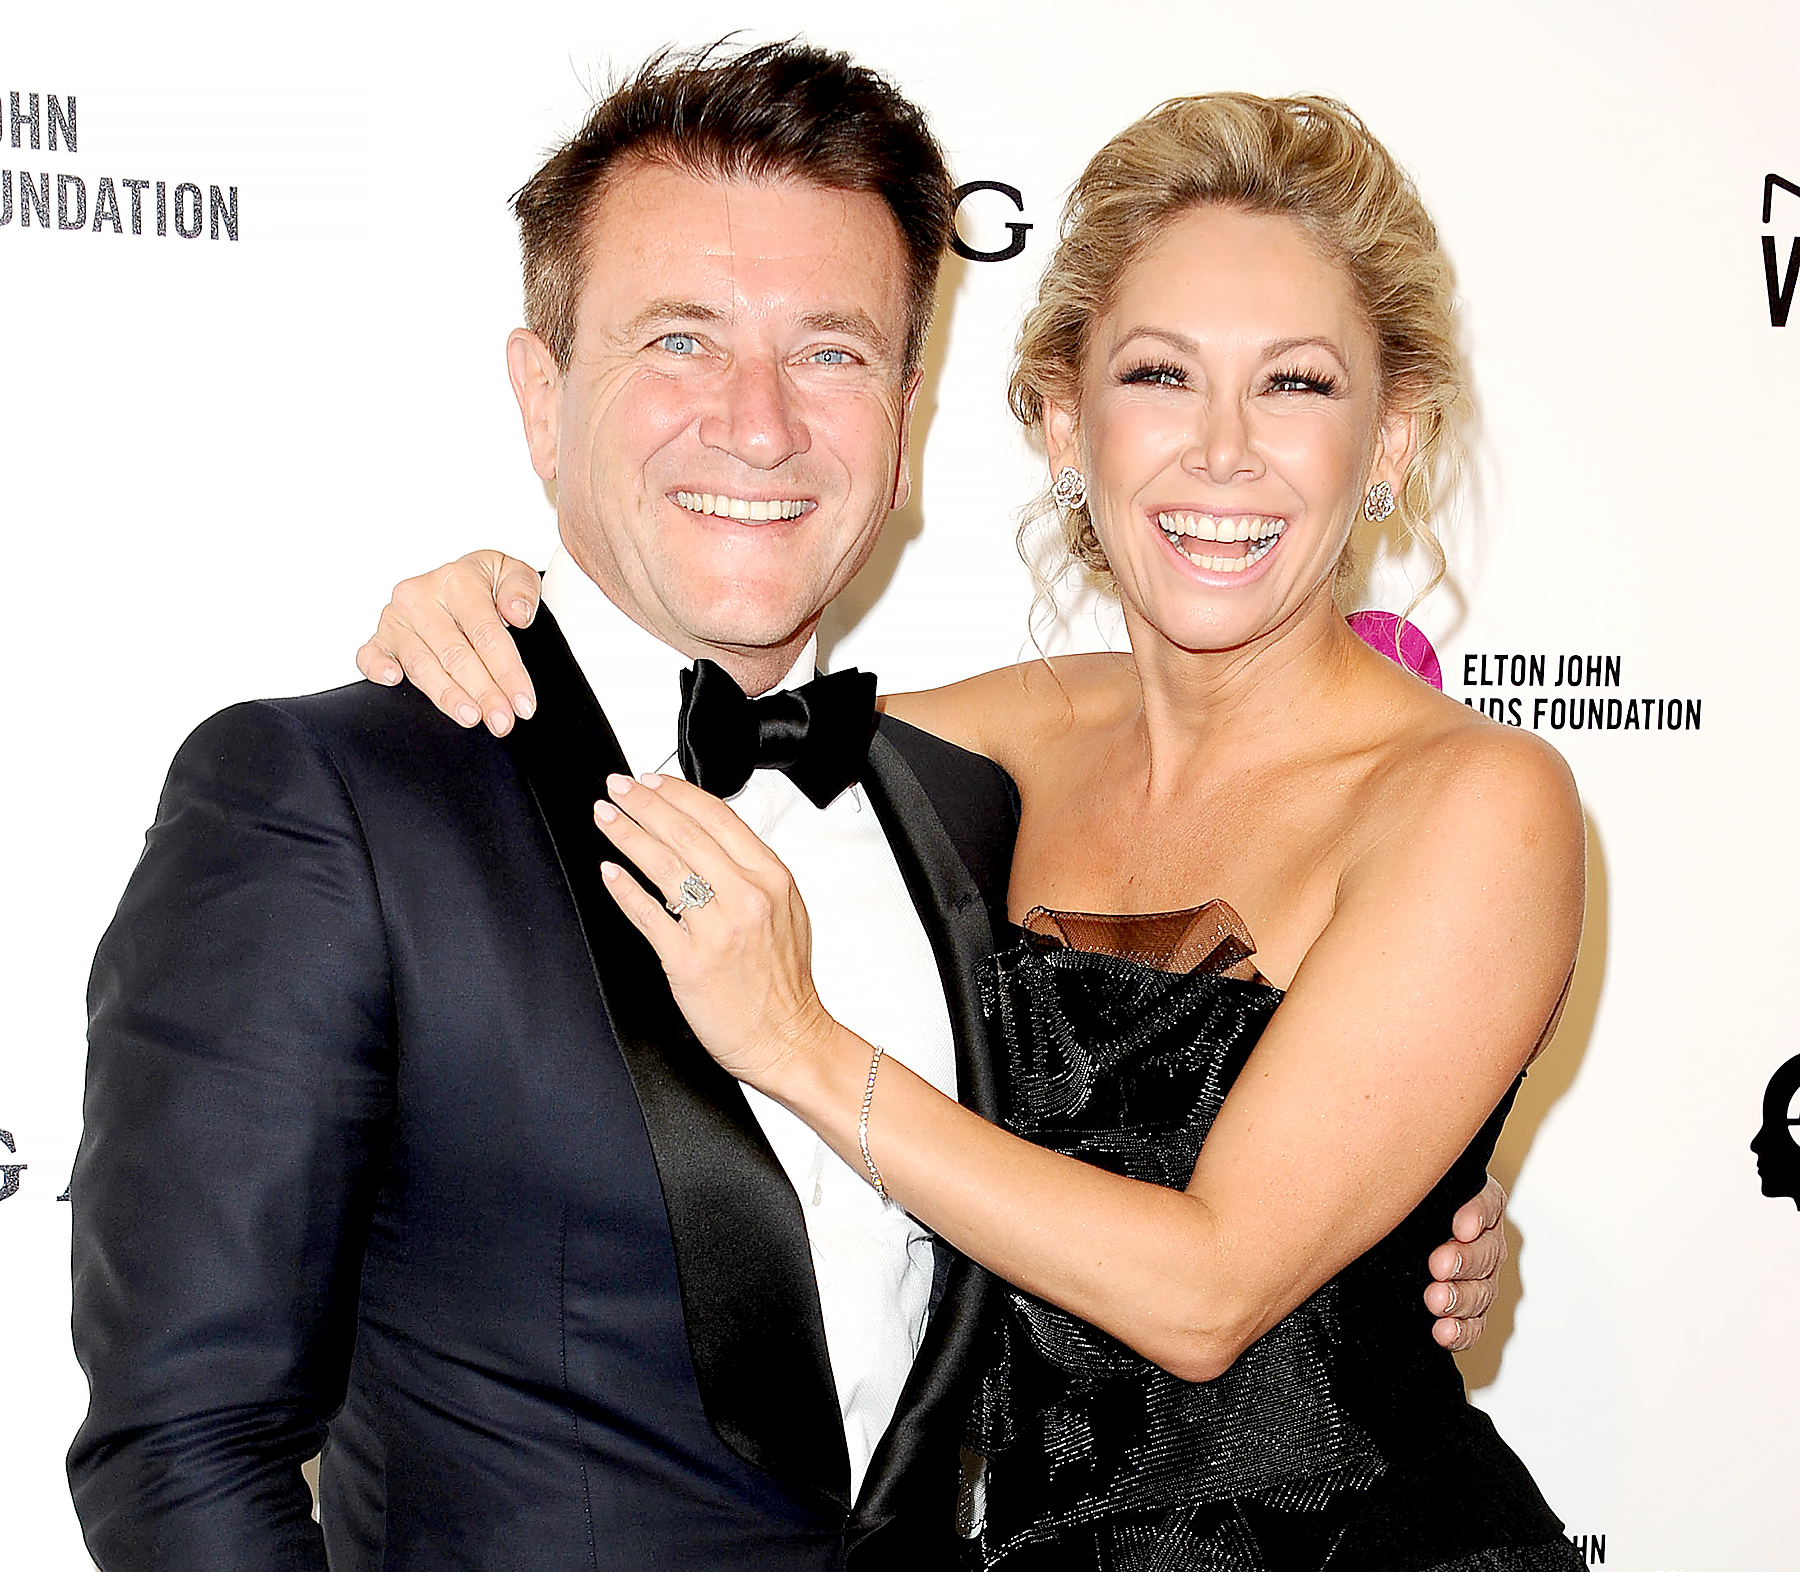 'DWTS' Pro Kym Johnson and Robert Herjavec Expecting Twins